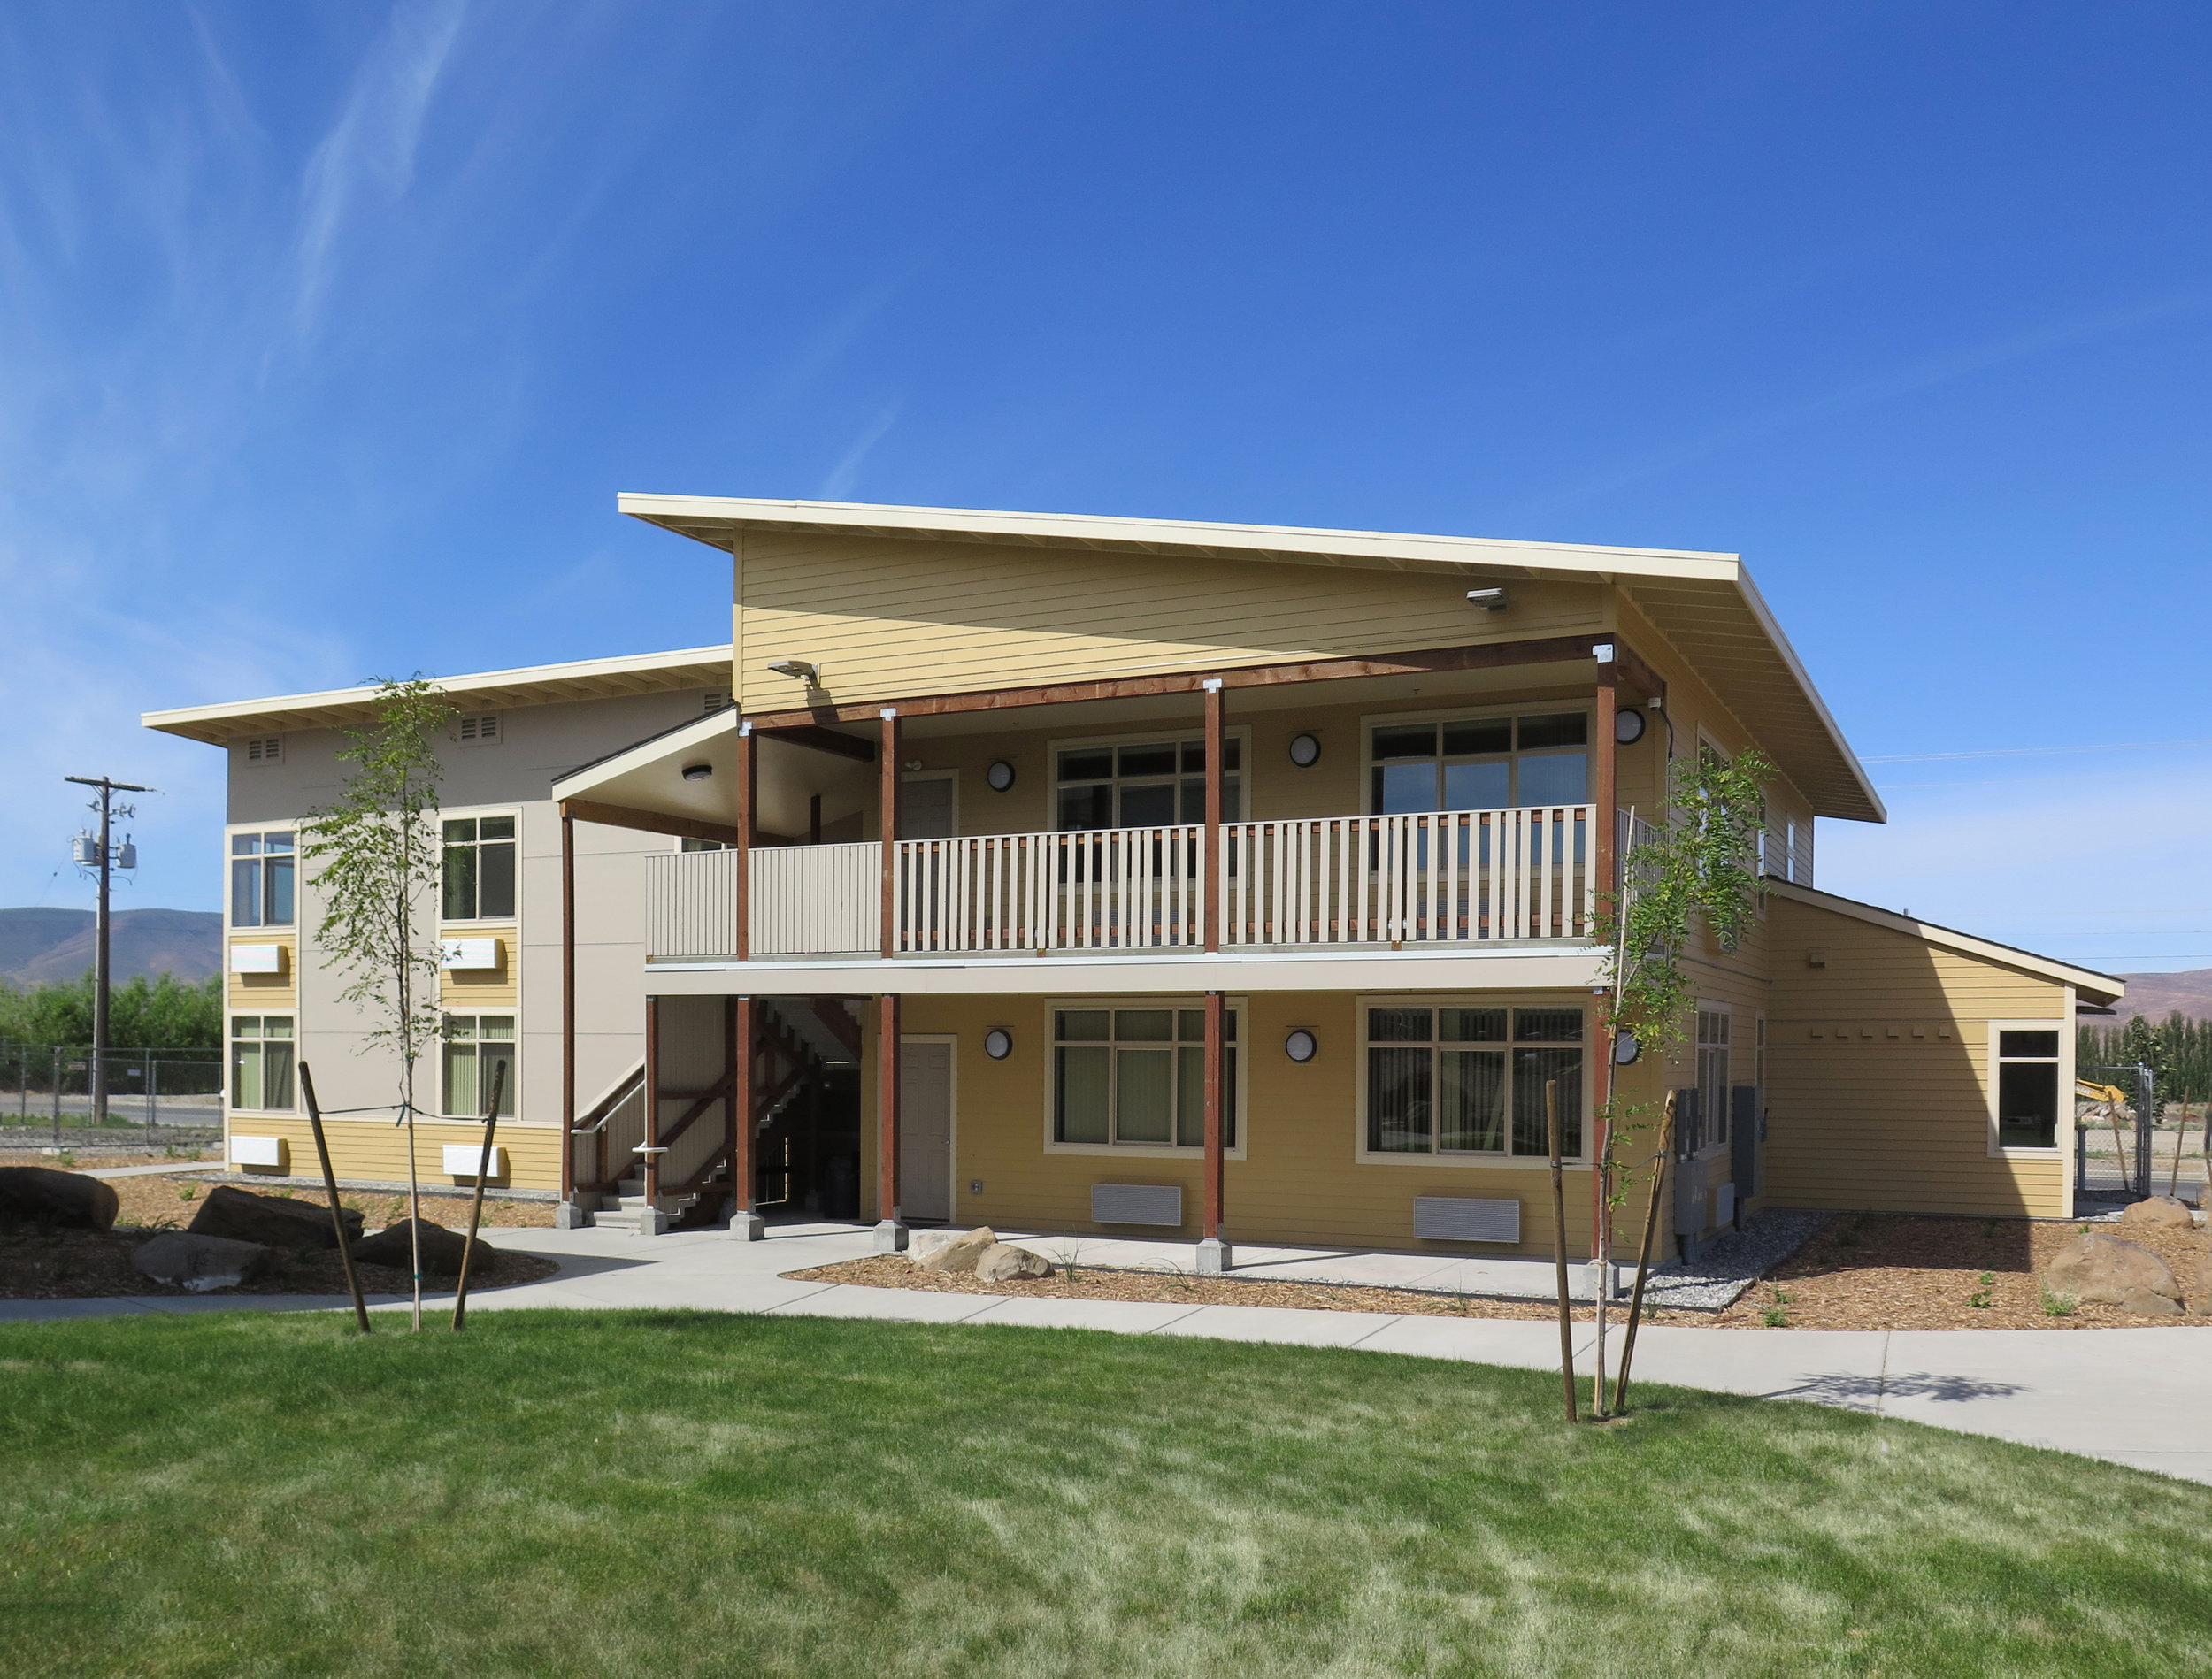 - Client: Washington Growers LeagueLocation: Mattawa, WACompletion: Phase 1-2018Project Size: 4 Building, 7-Unit Housing Development, Offices, Common Areas